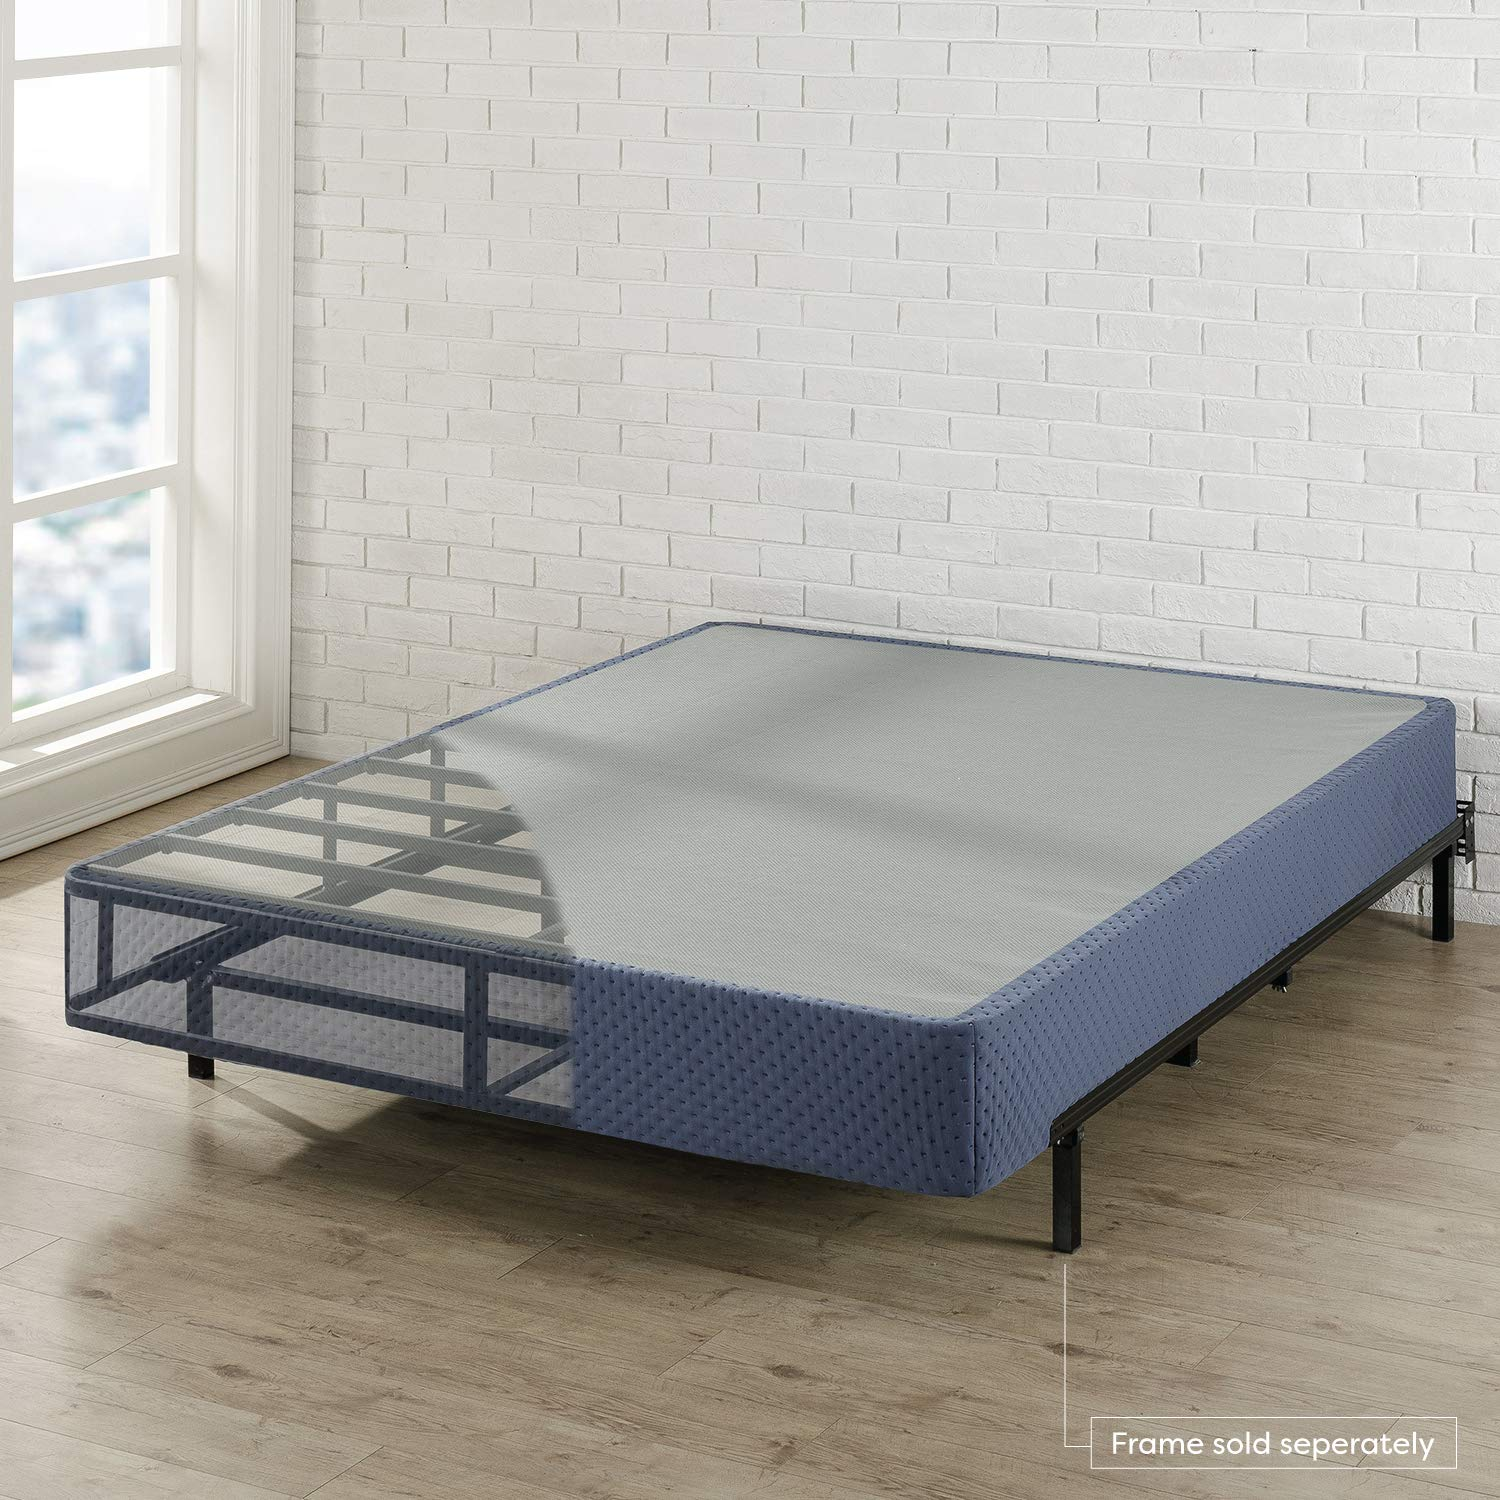 Best Price Mattress Twin Box Spring 9'' High Profile with with Heavy Duty Steel Slat Mattress Foundation Fits Standard Bed Frame, Navy